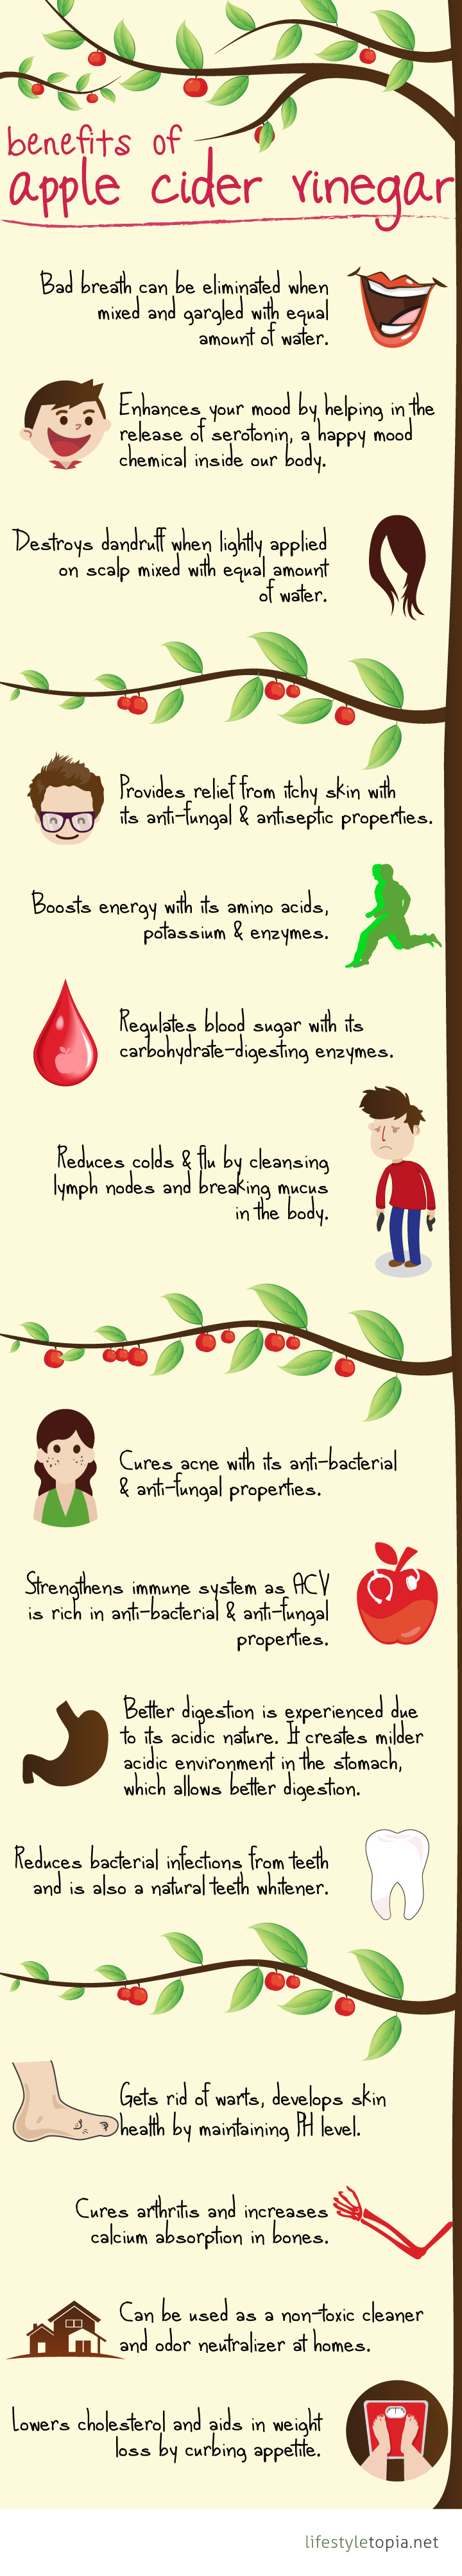 15 Uses Of Apple Cider Vinegar - Infographic